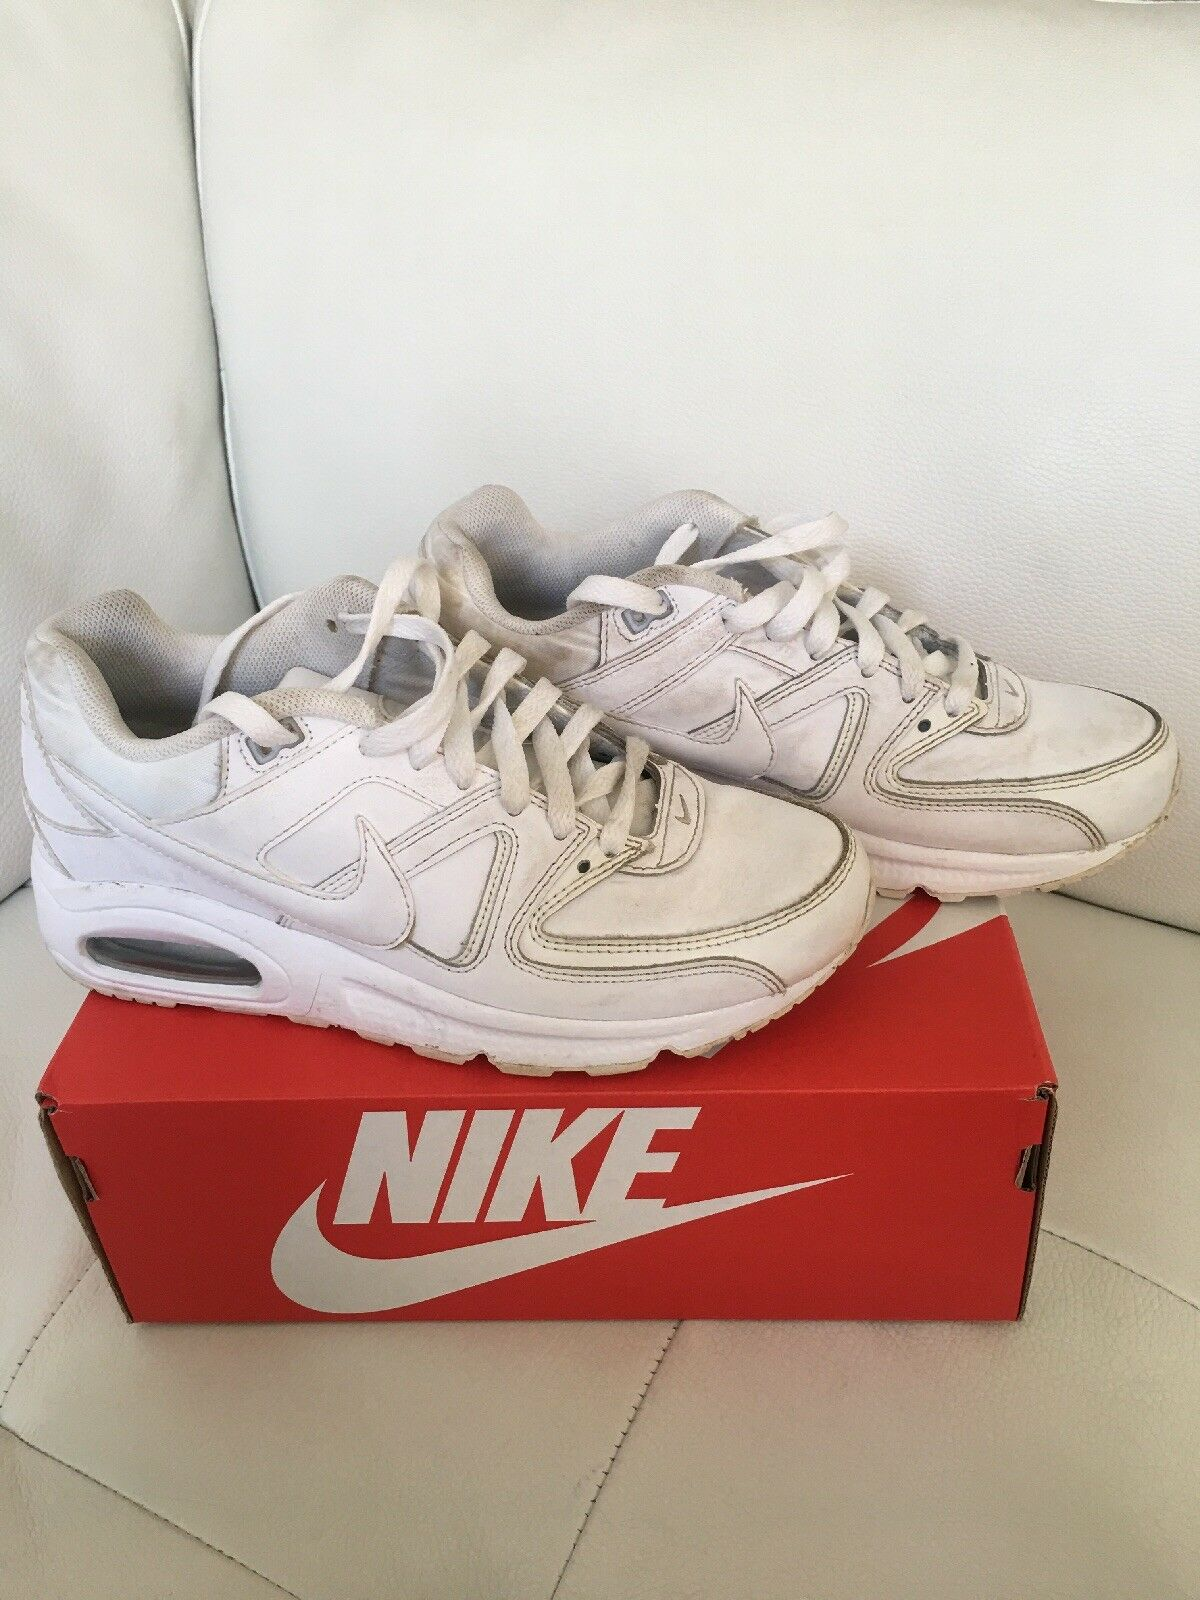 Nike Air Max Trainers size 6  Cheap and beautiful fashion